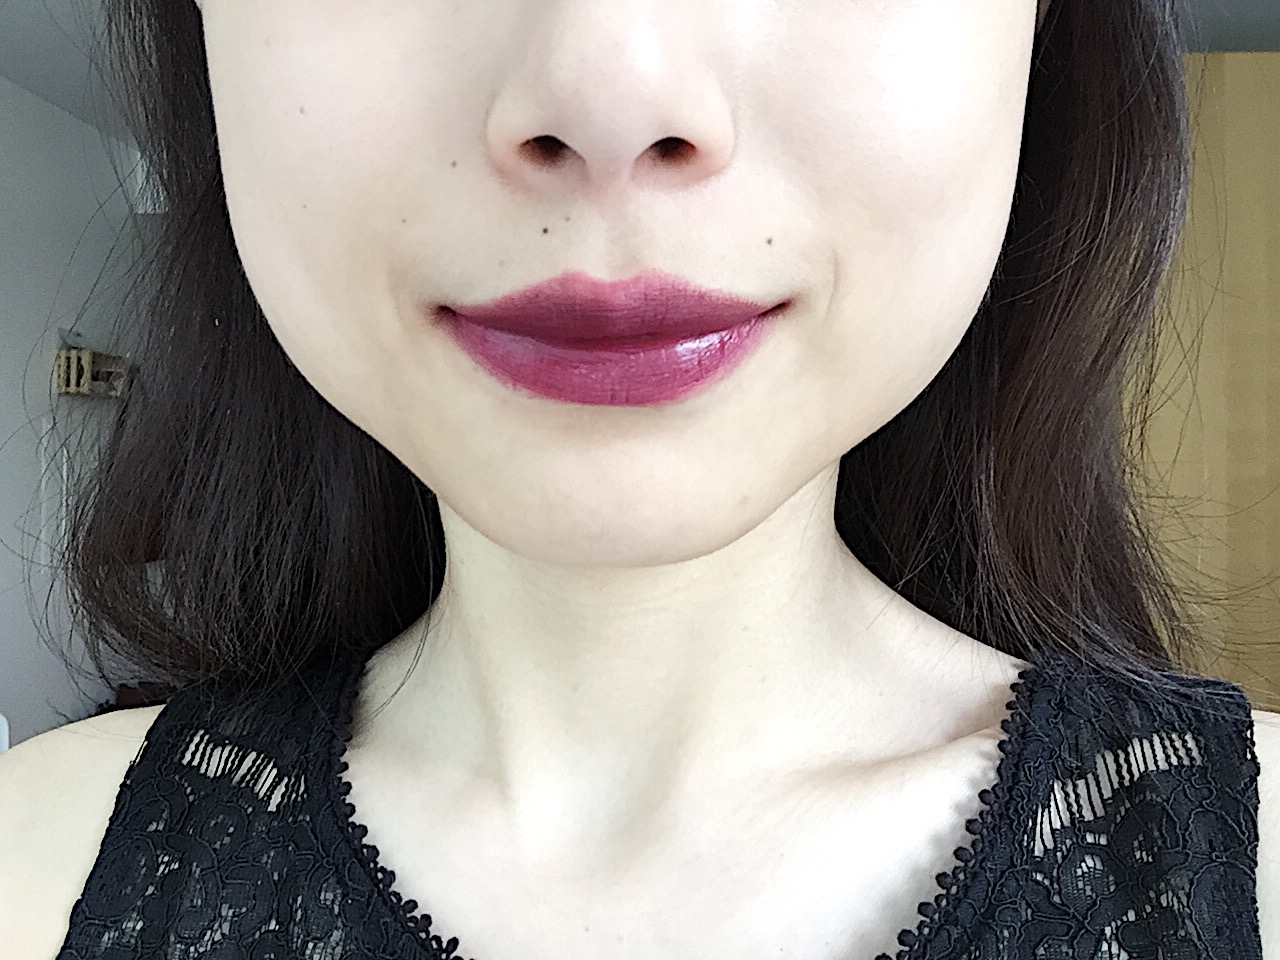 3CE LIP COLOR-#604 (VAMP) - This  lipstick is from a Korean clothing brand called STYLENANDA, which has a sub cosmetics line called 3CE. I would say that it's the Korean equivalent of TOPSHOP. Vamp is in a shade of dark purple and is semi-matte. Because this shade is on the cooler side, I find that it often washes my skin out and doesn't look the most flattering with my skin tone. I find this very easy to work with and very versatile. You can cover your entire lips with several coats for a dramatic, vampy look, or apply it to the insides of your lips and blend it out to the outer corners for a more everyday look.